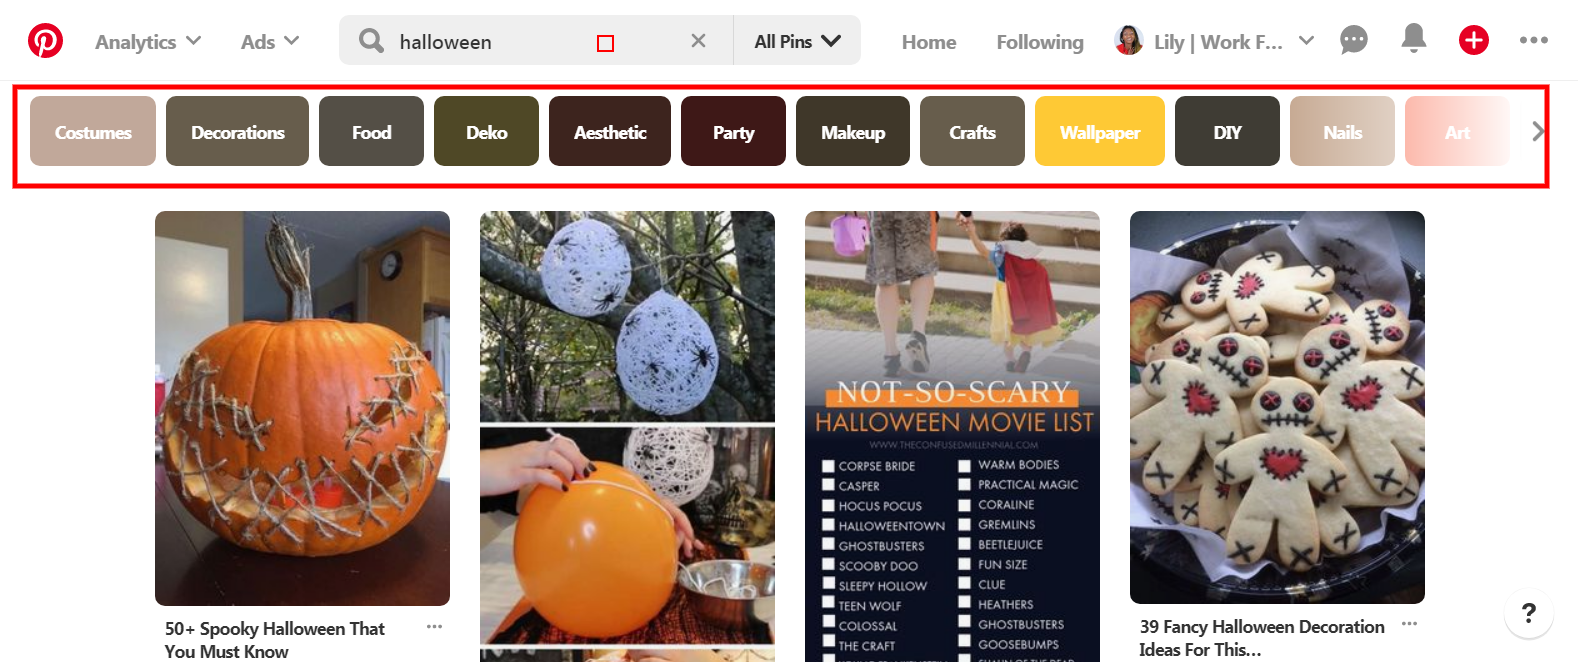 how to find halloween blog post ideas from pinterest search